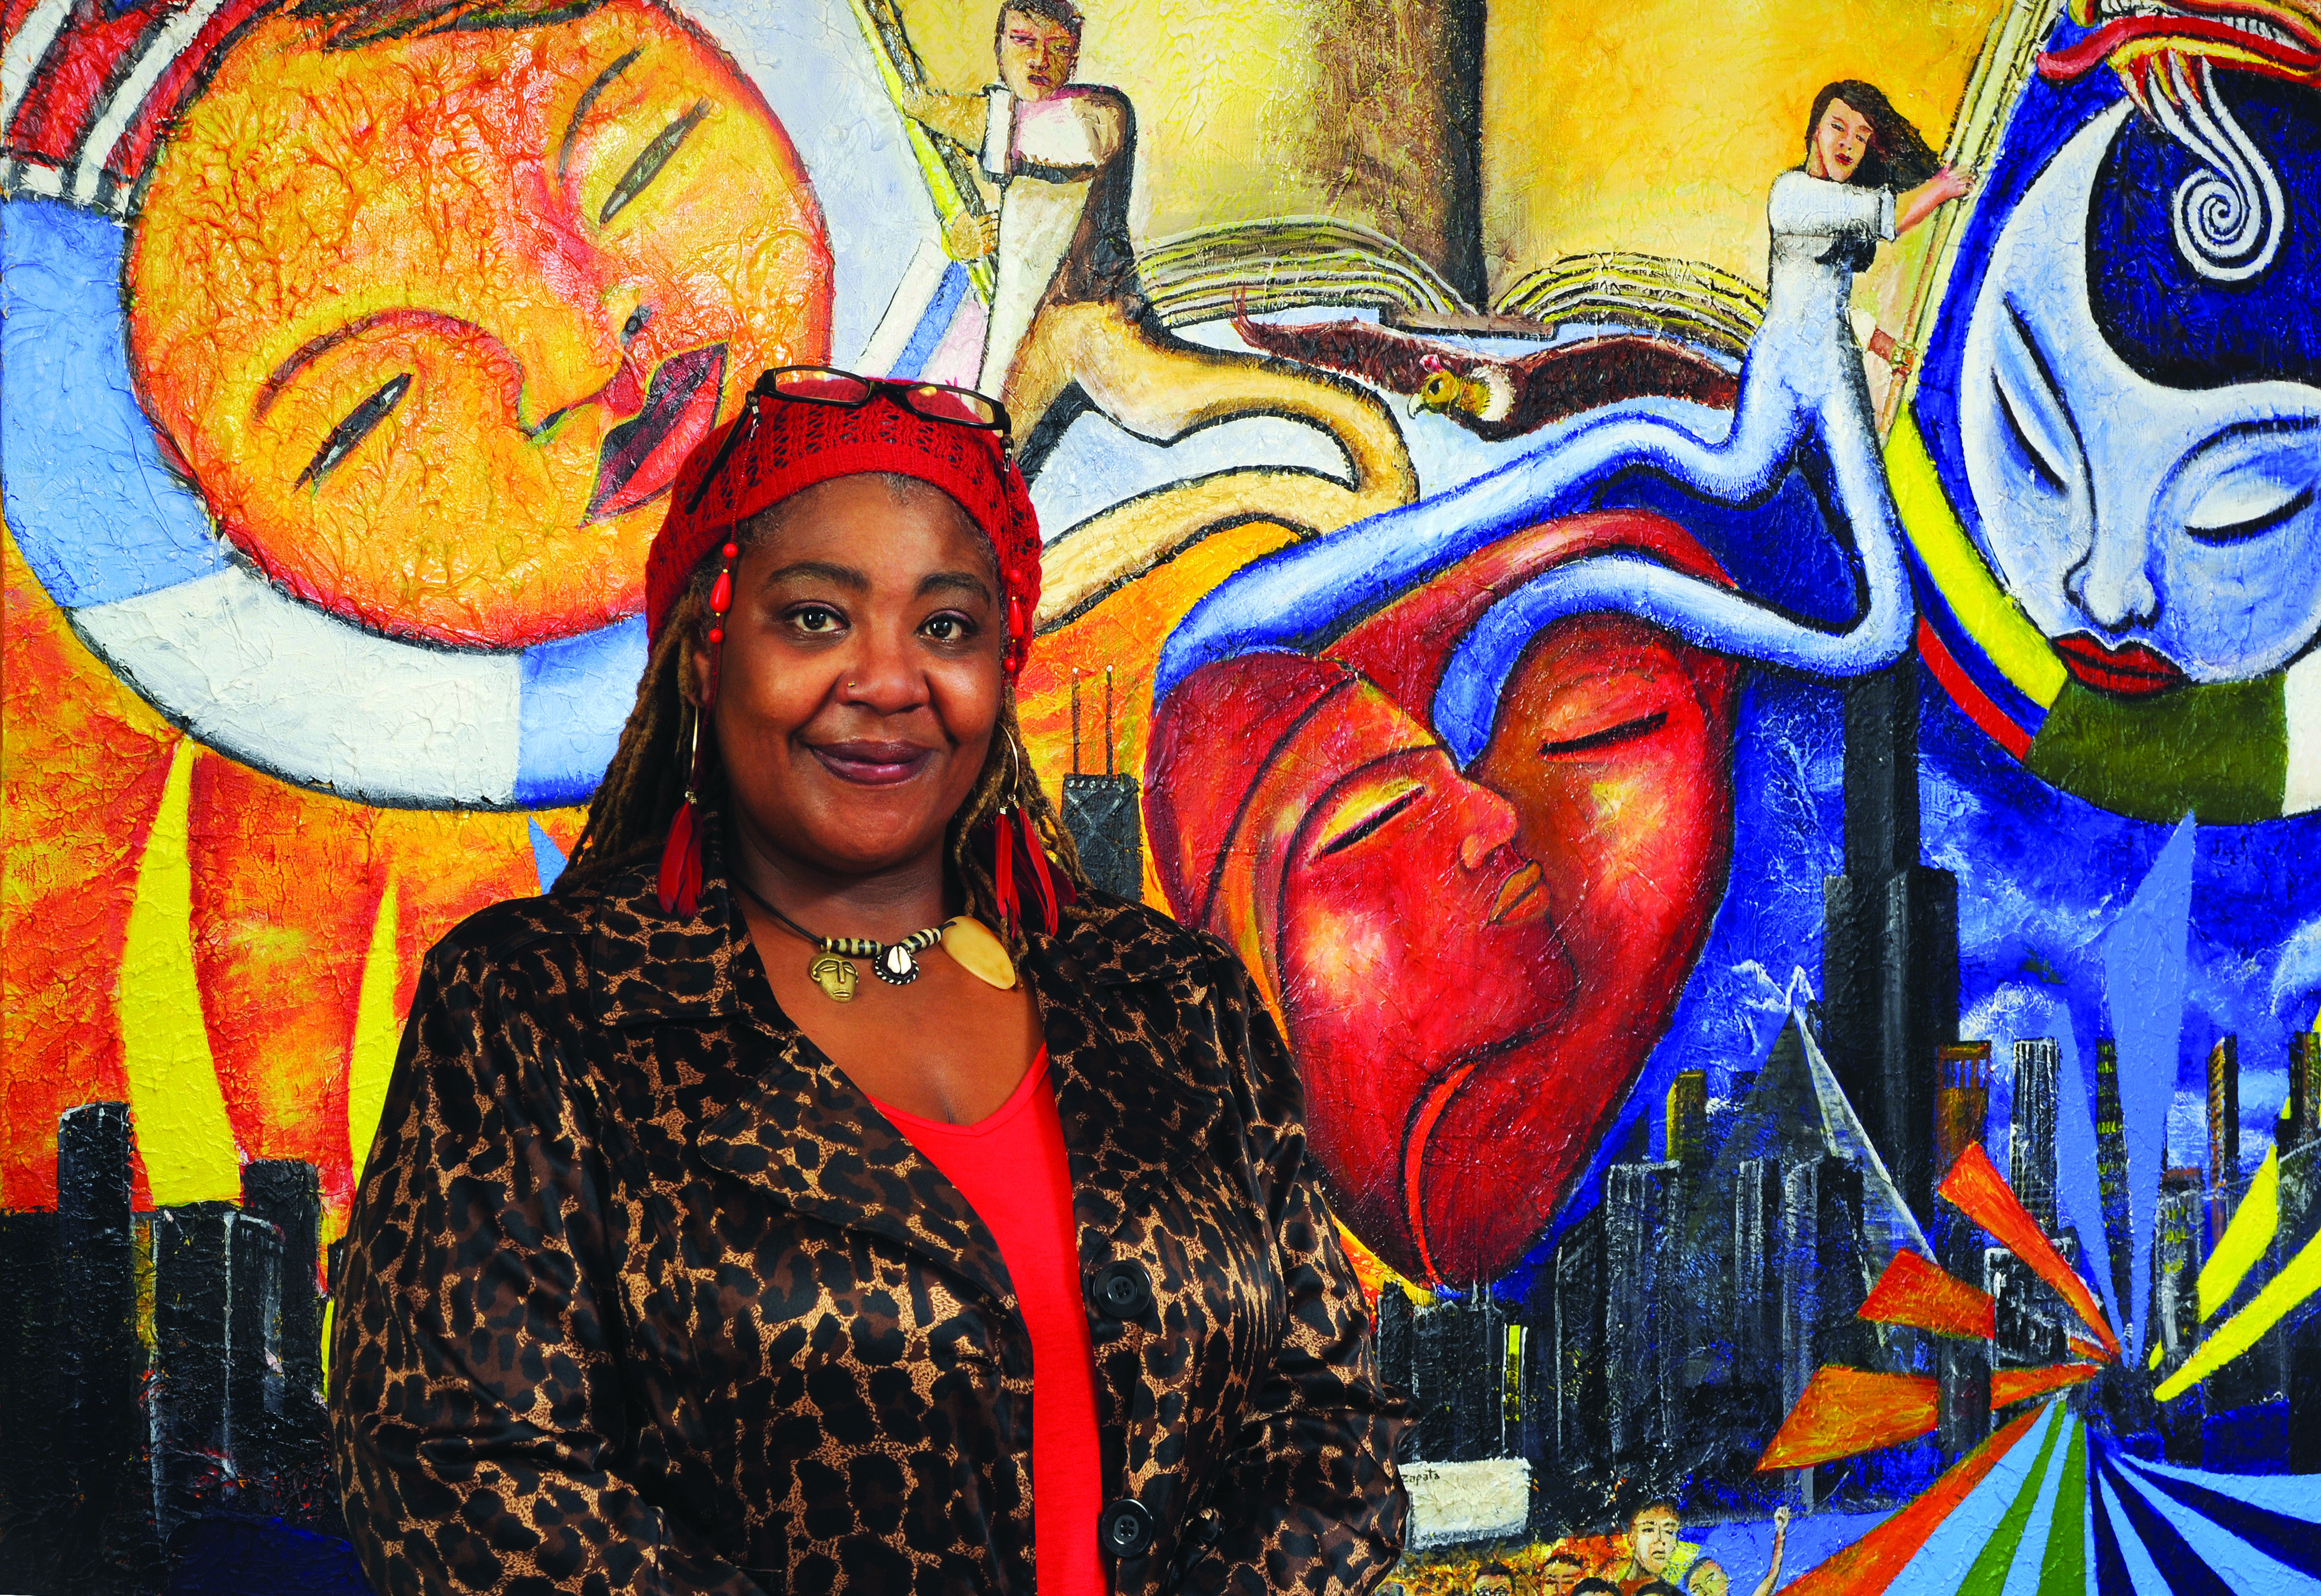 Rachel Hall, NEIUAA Internship Scholarship recipient, poses in front of a colorful mural.